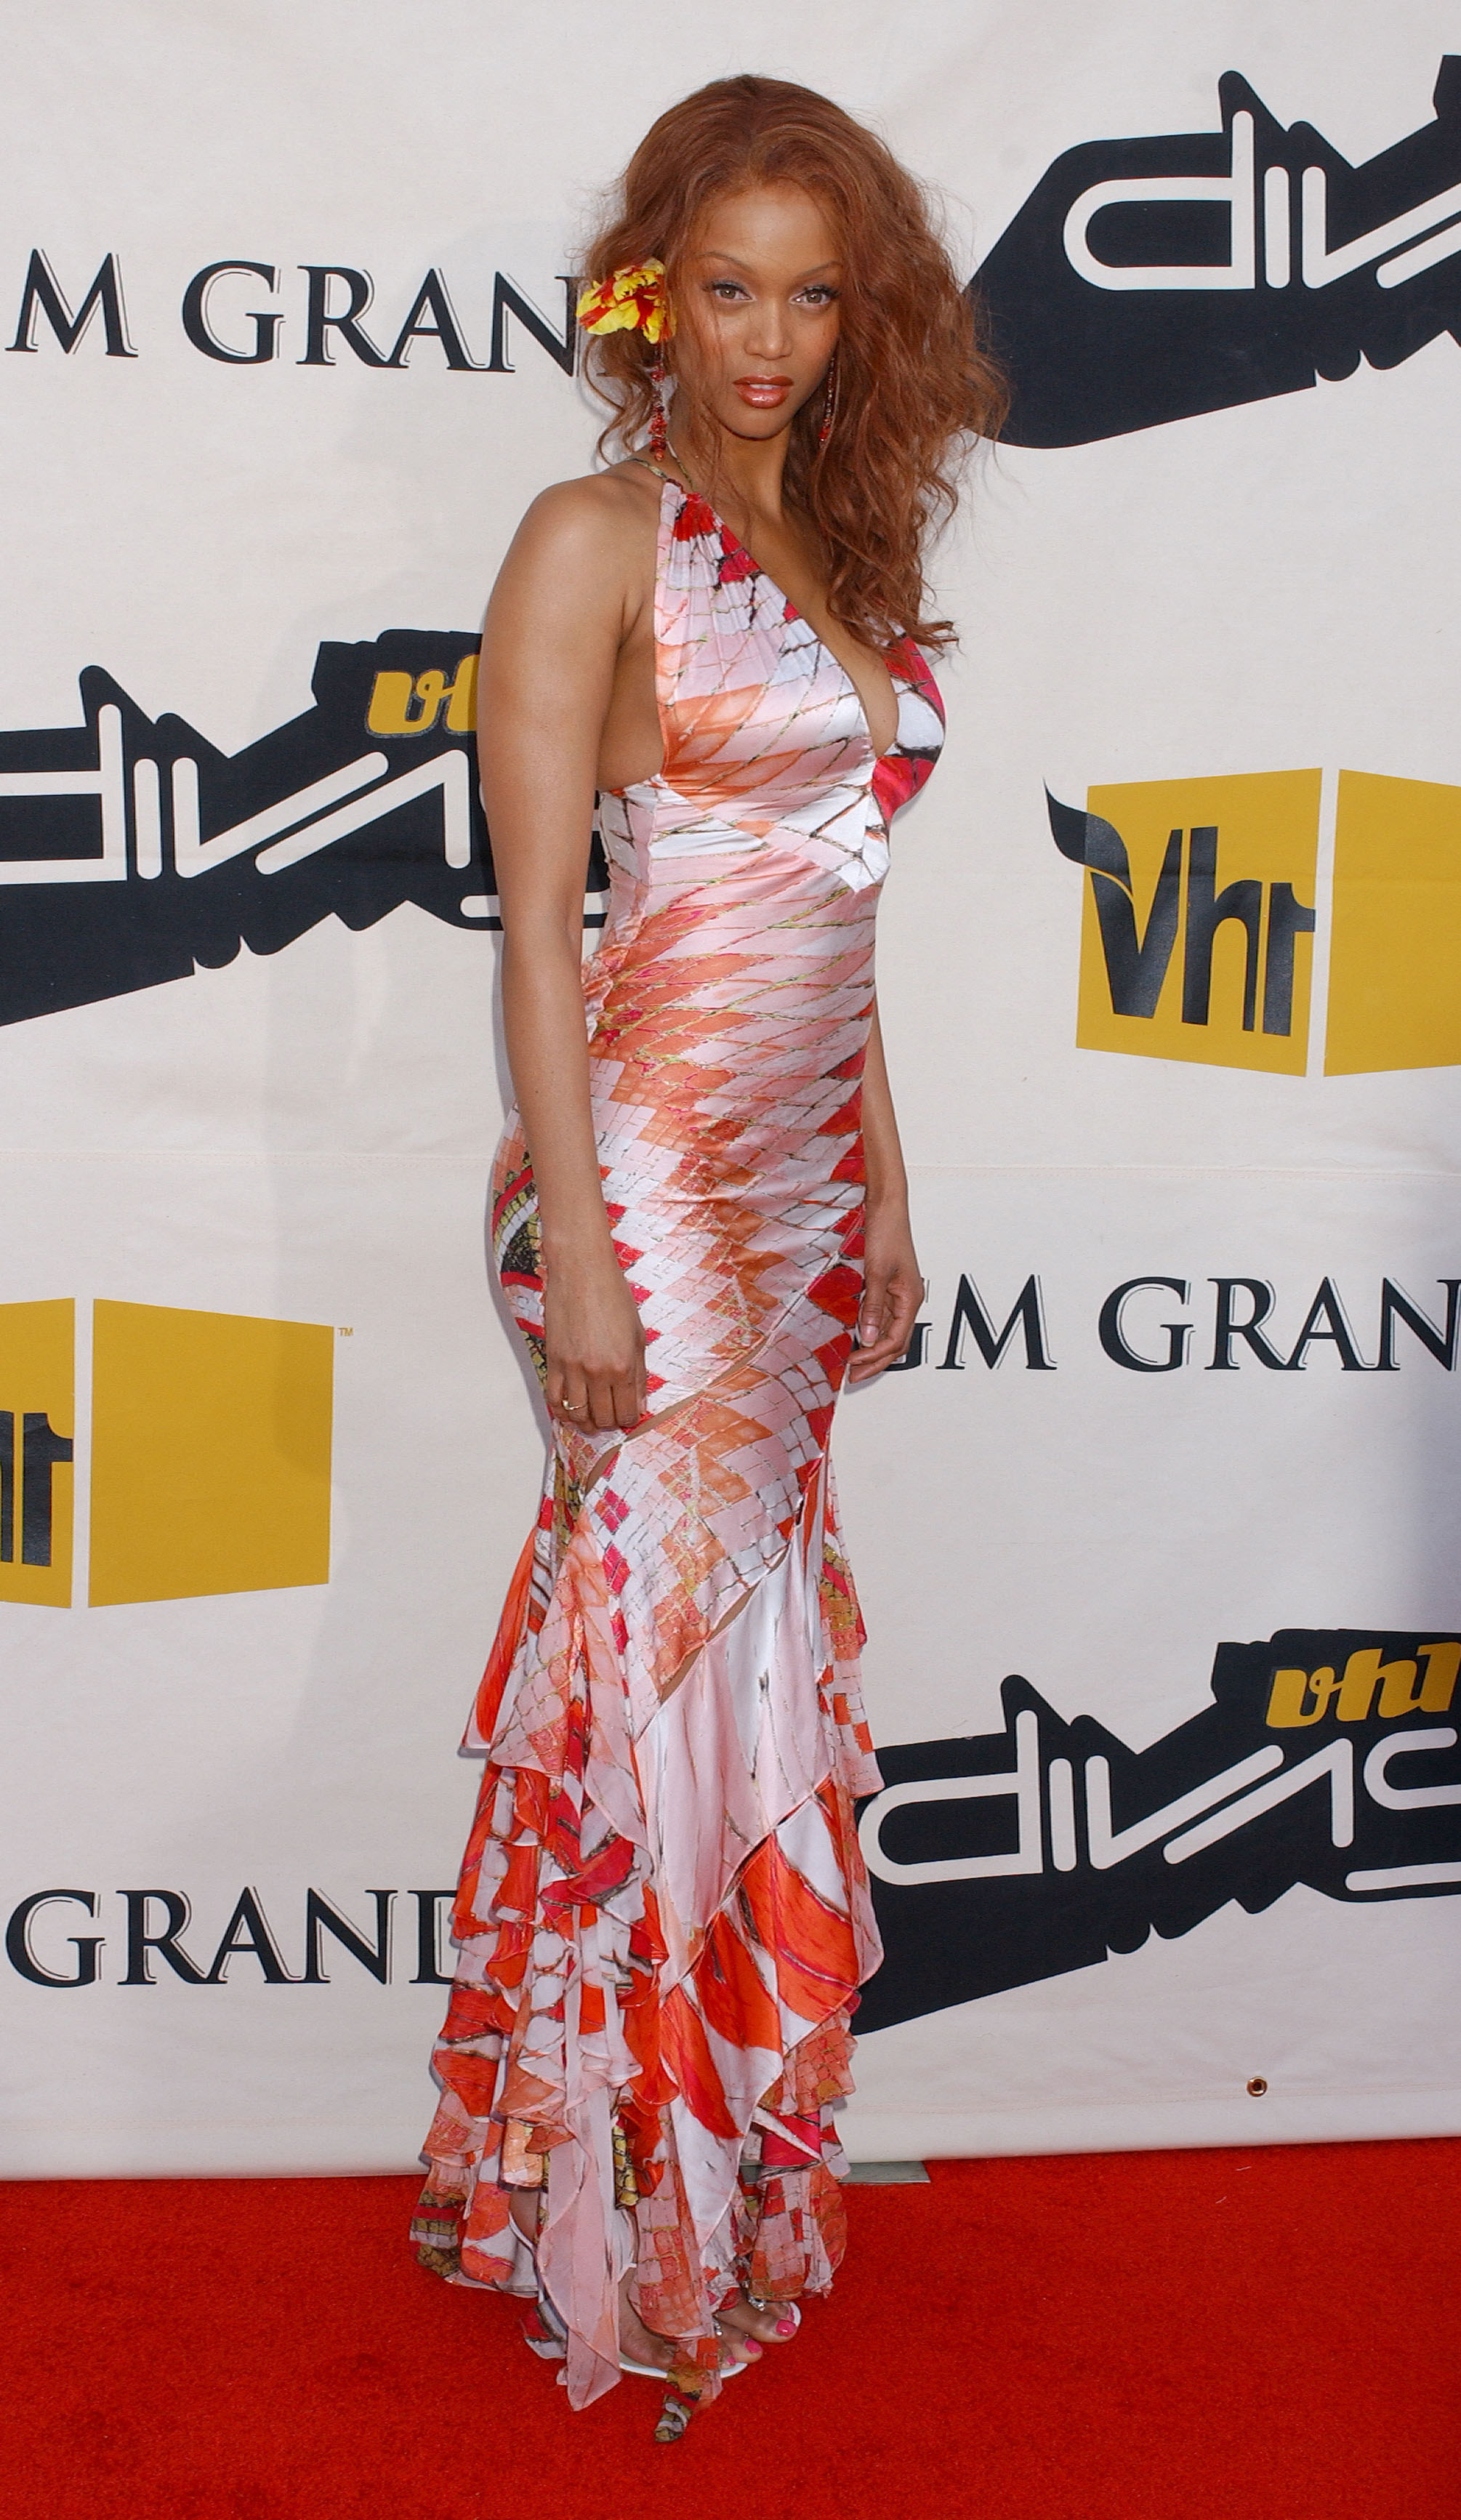 Tyra wears a long patterned halter gown with ruffles at the bottom and a flower in her hair.